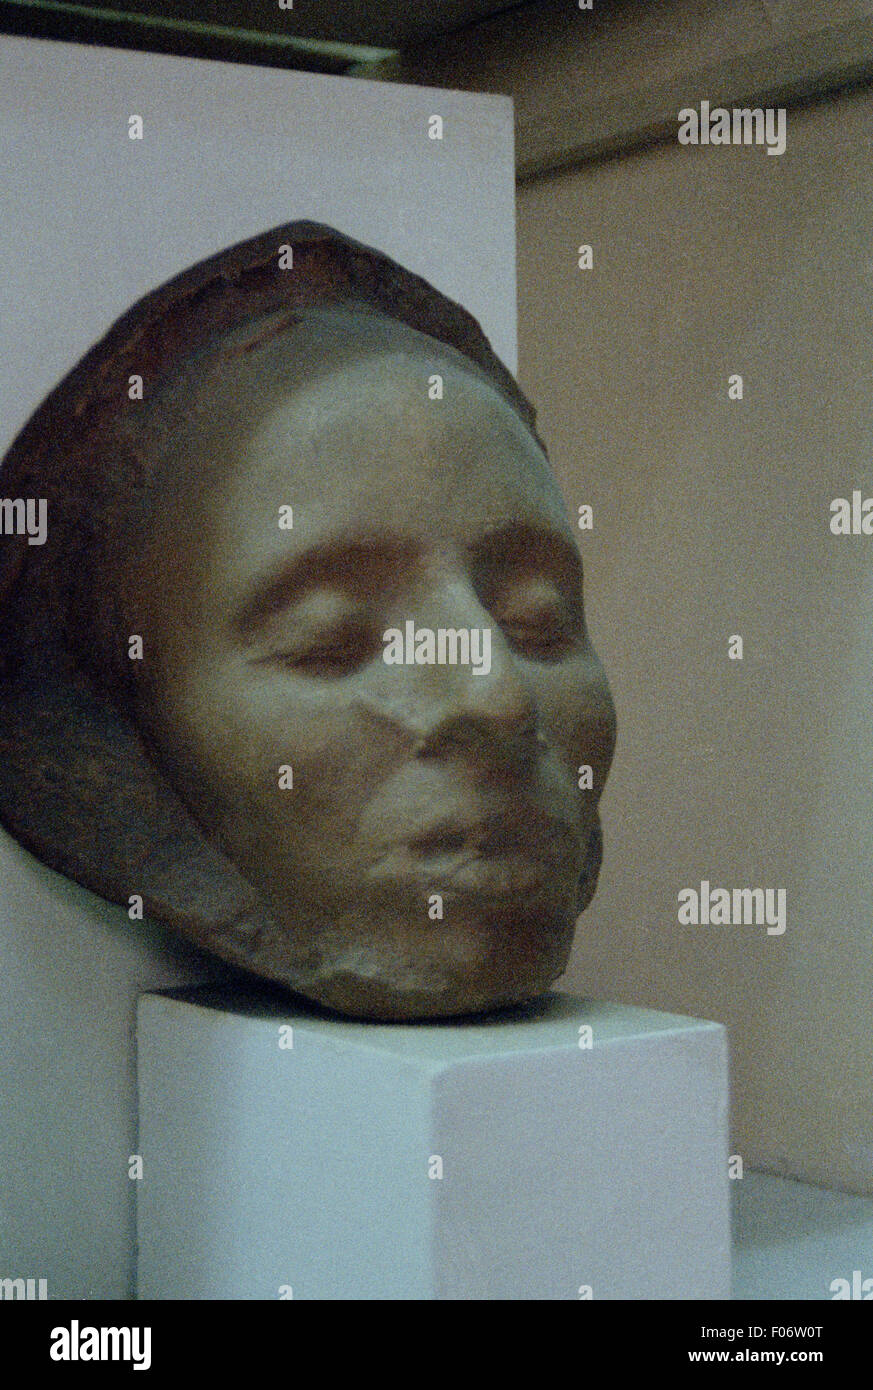 The death mask of Vysotsky was sold for 55 thousand euros. 25.11.2015 81